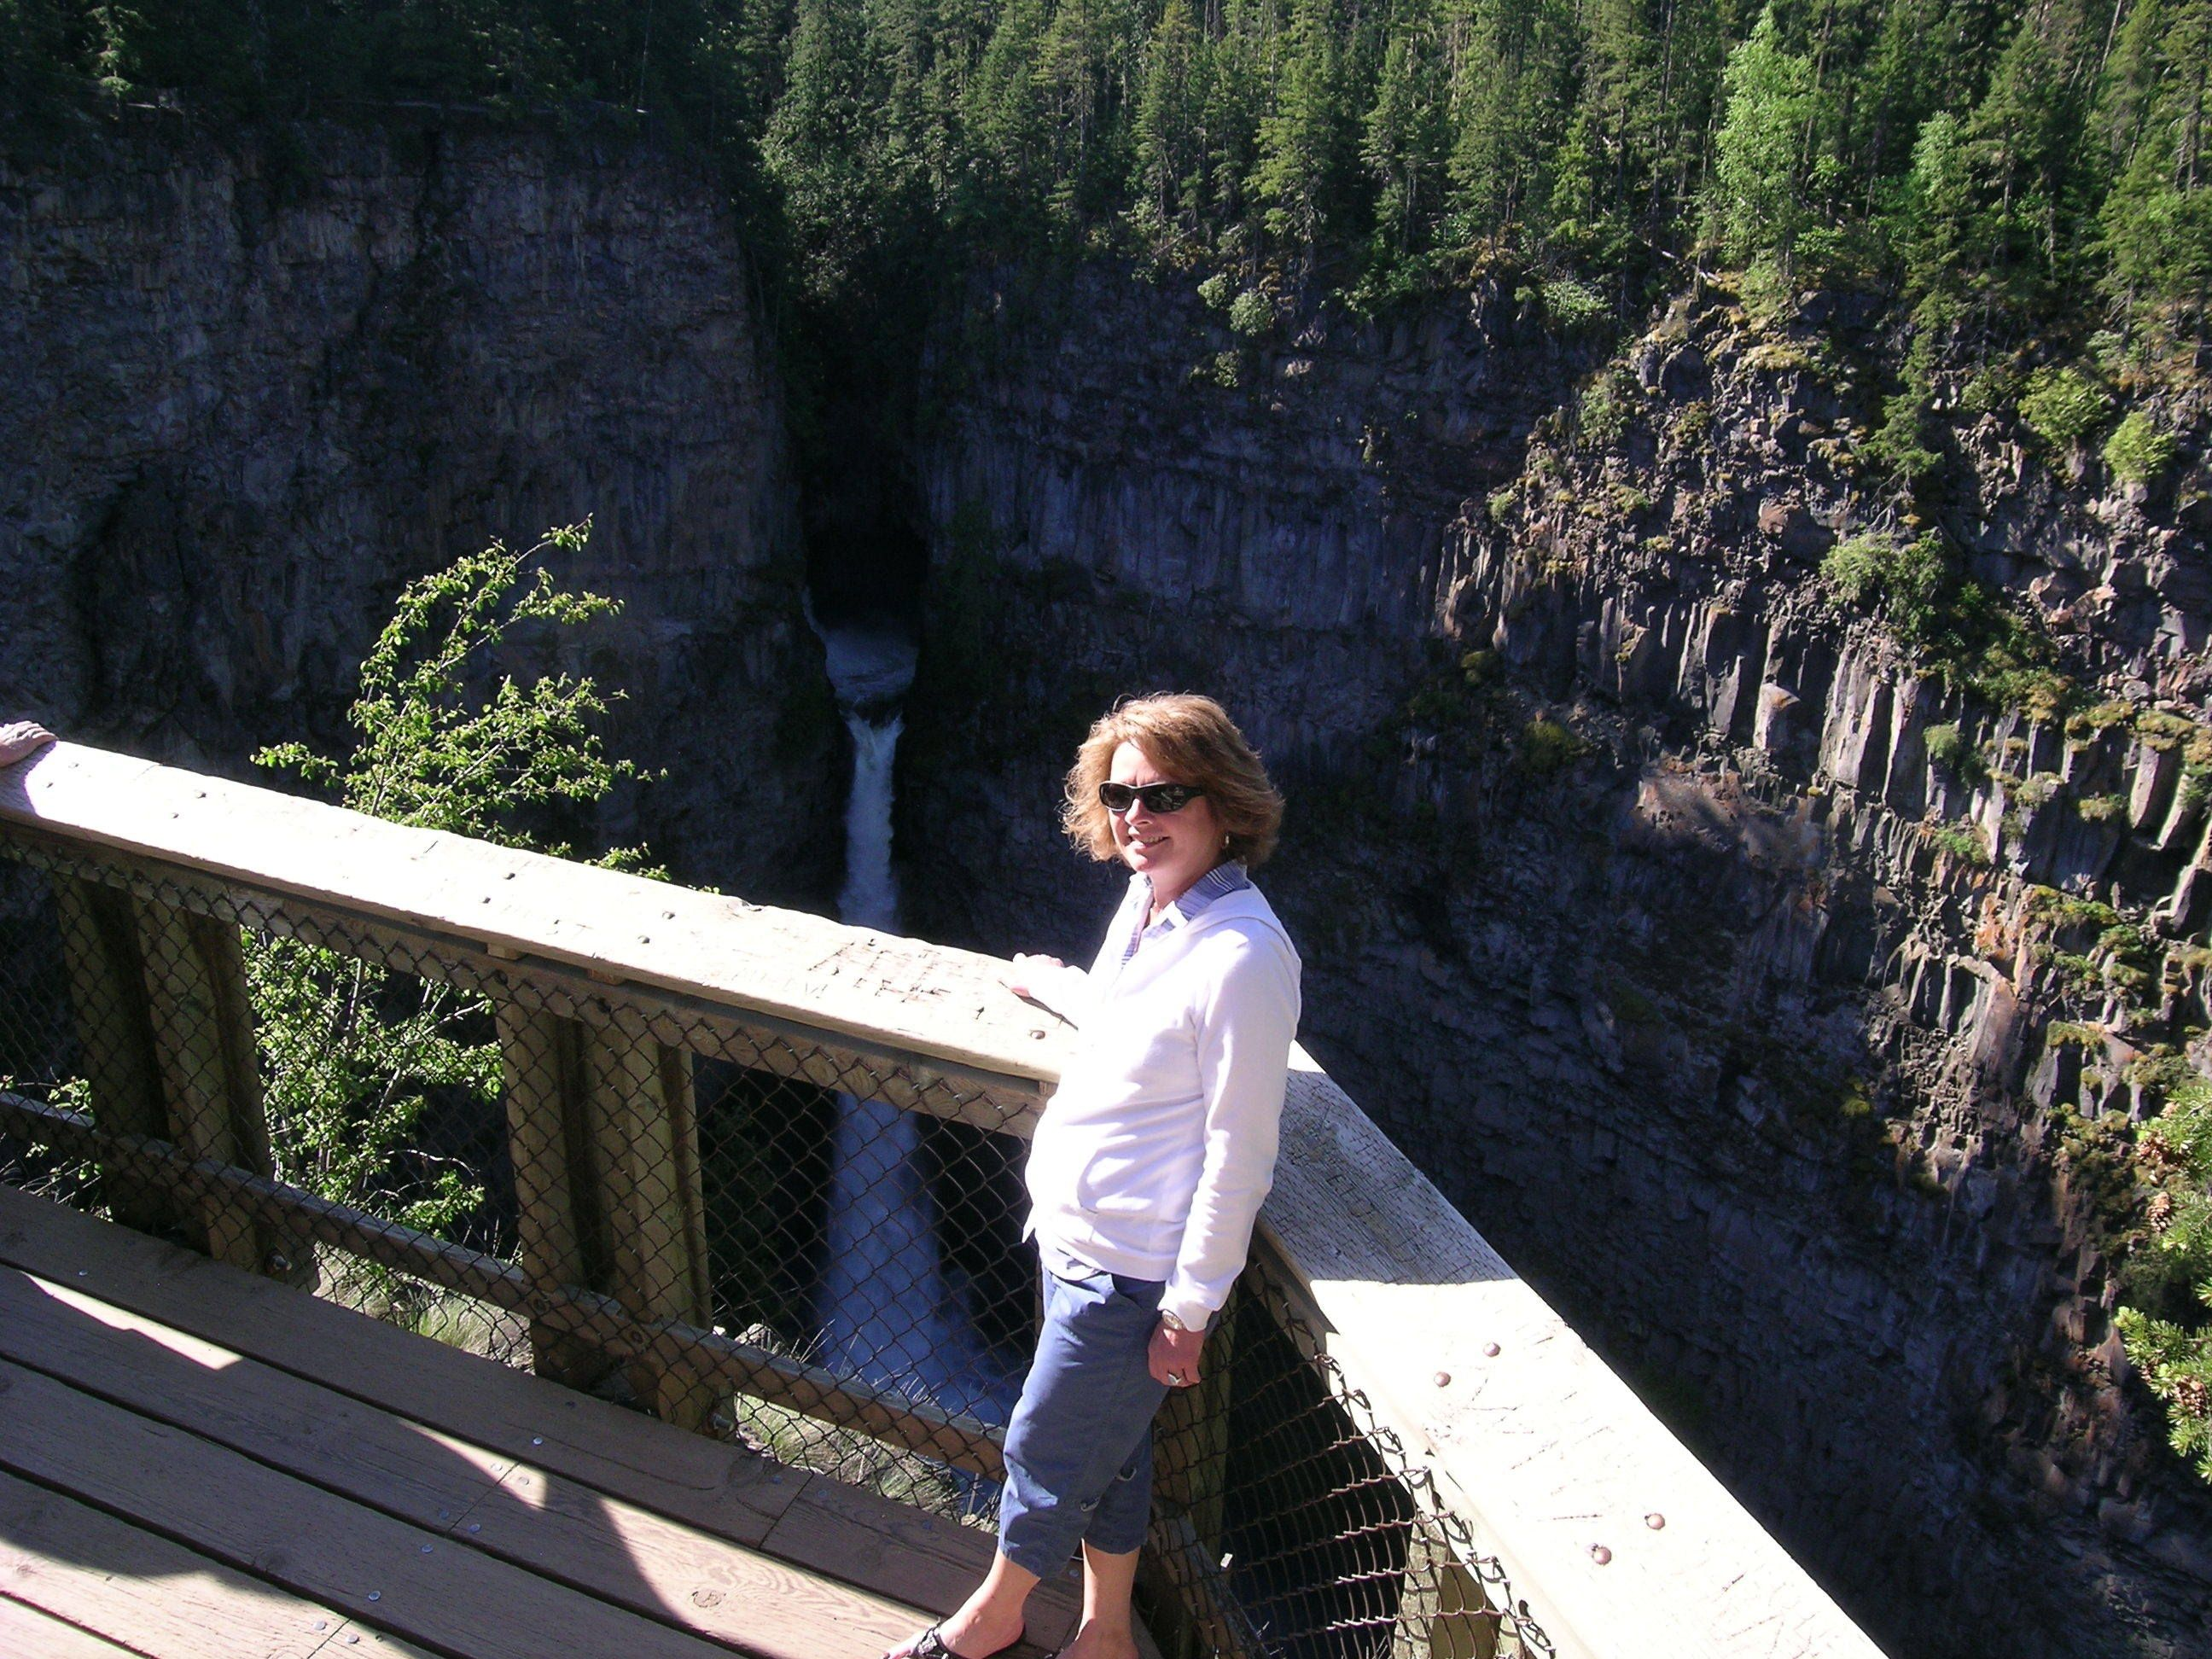 snohomish single personals Online personals with photos of single men and women seeking each other for dating, love, and marriage in snohomish.